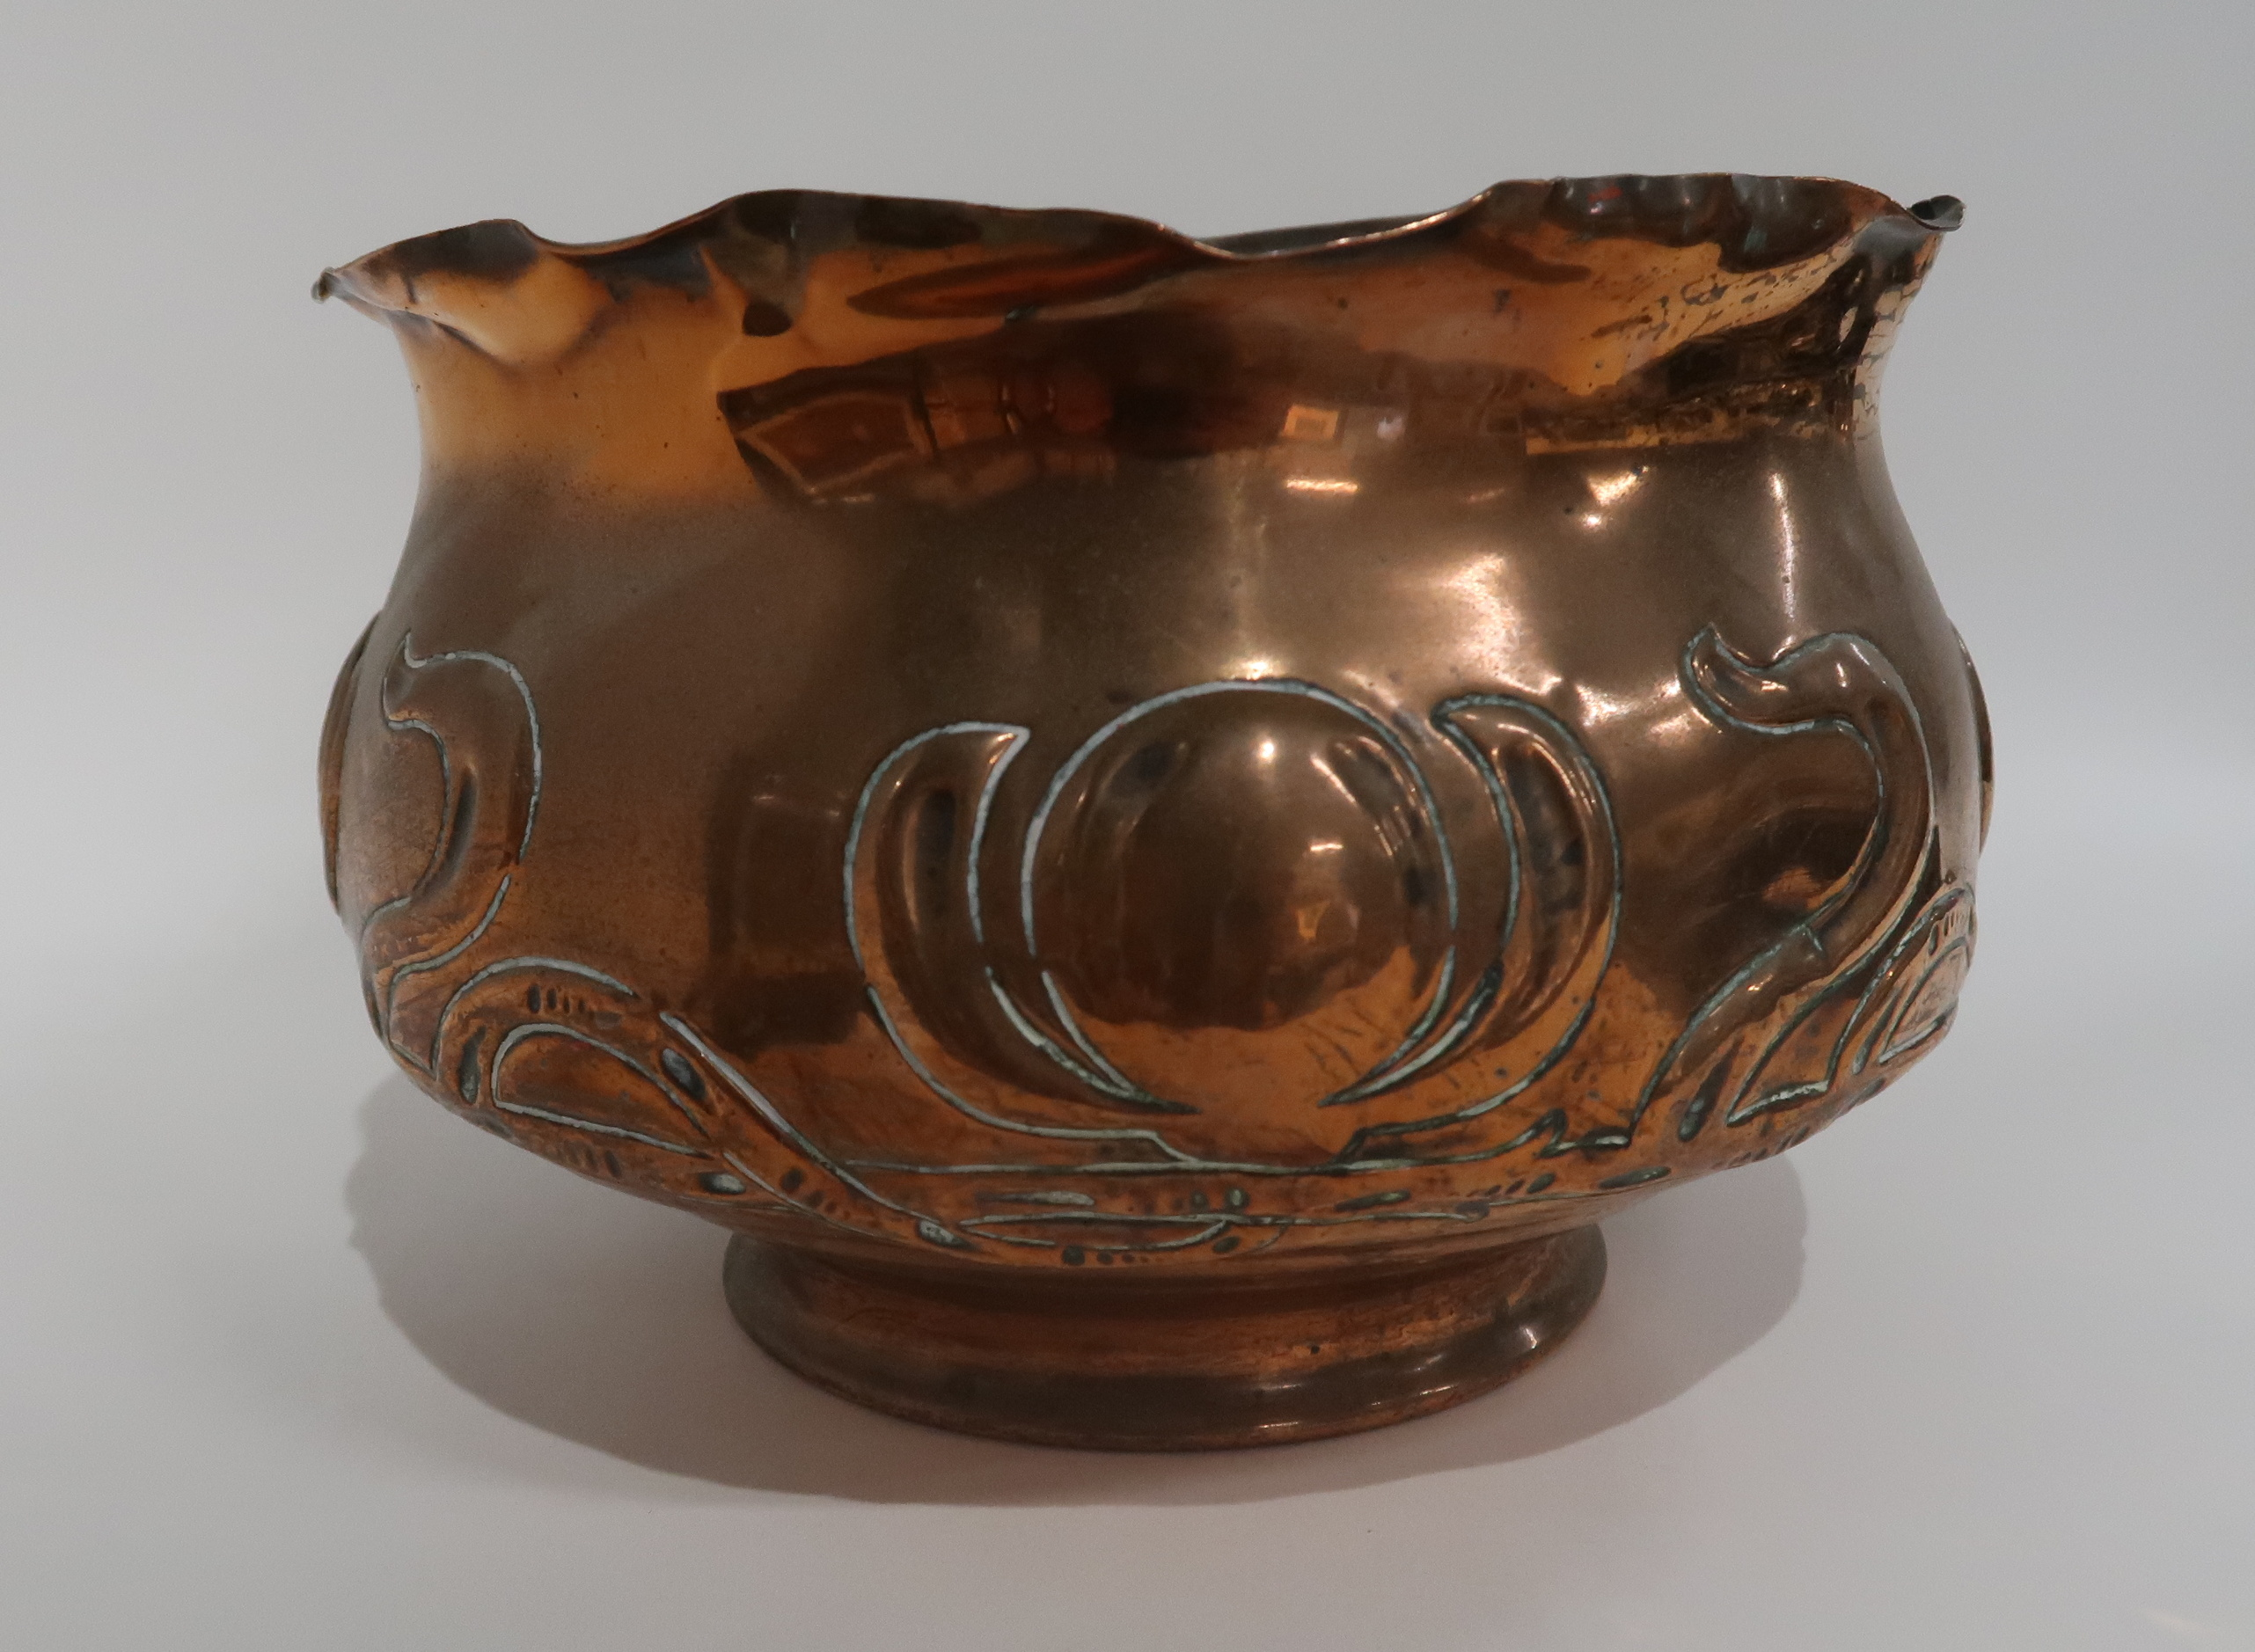 A WILLIAM SOUTTER AND SONS COPPER JARDINIERE two brass celtic knotwork trinket dishes, a similar - Image 3 of 4